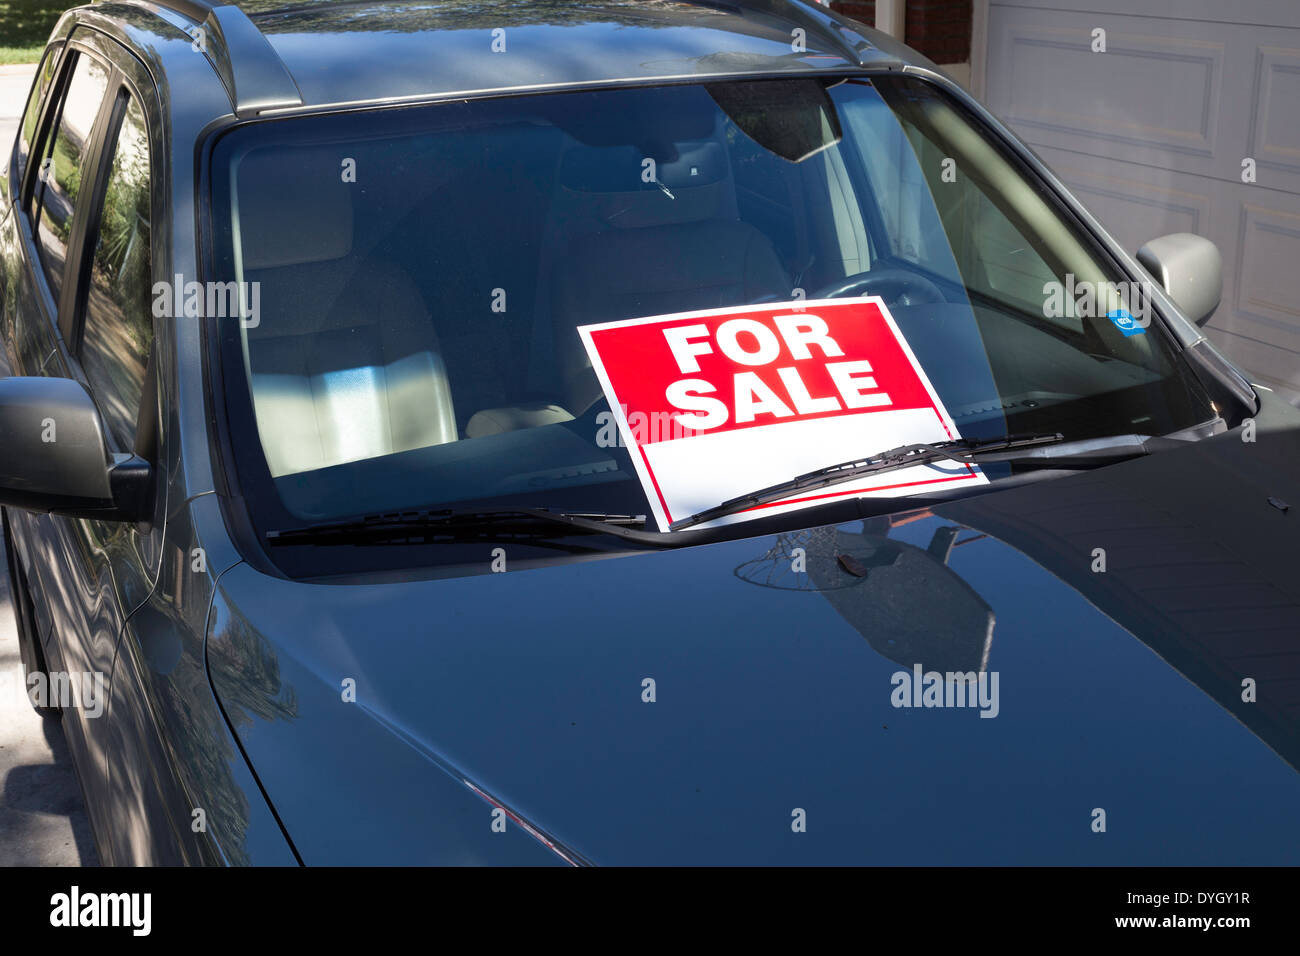 Used Car For Sale By Owner Usa Stock Photo 68599267 Alamy